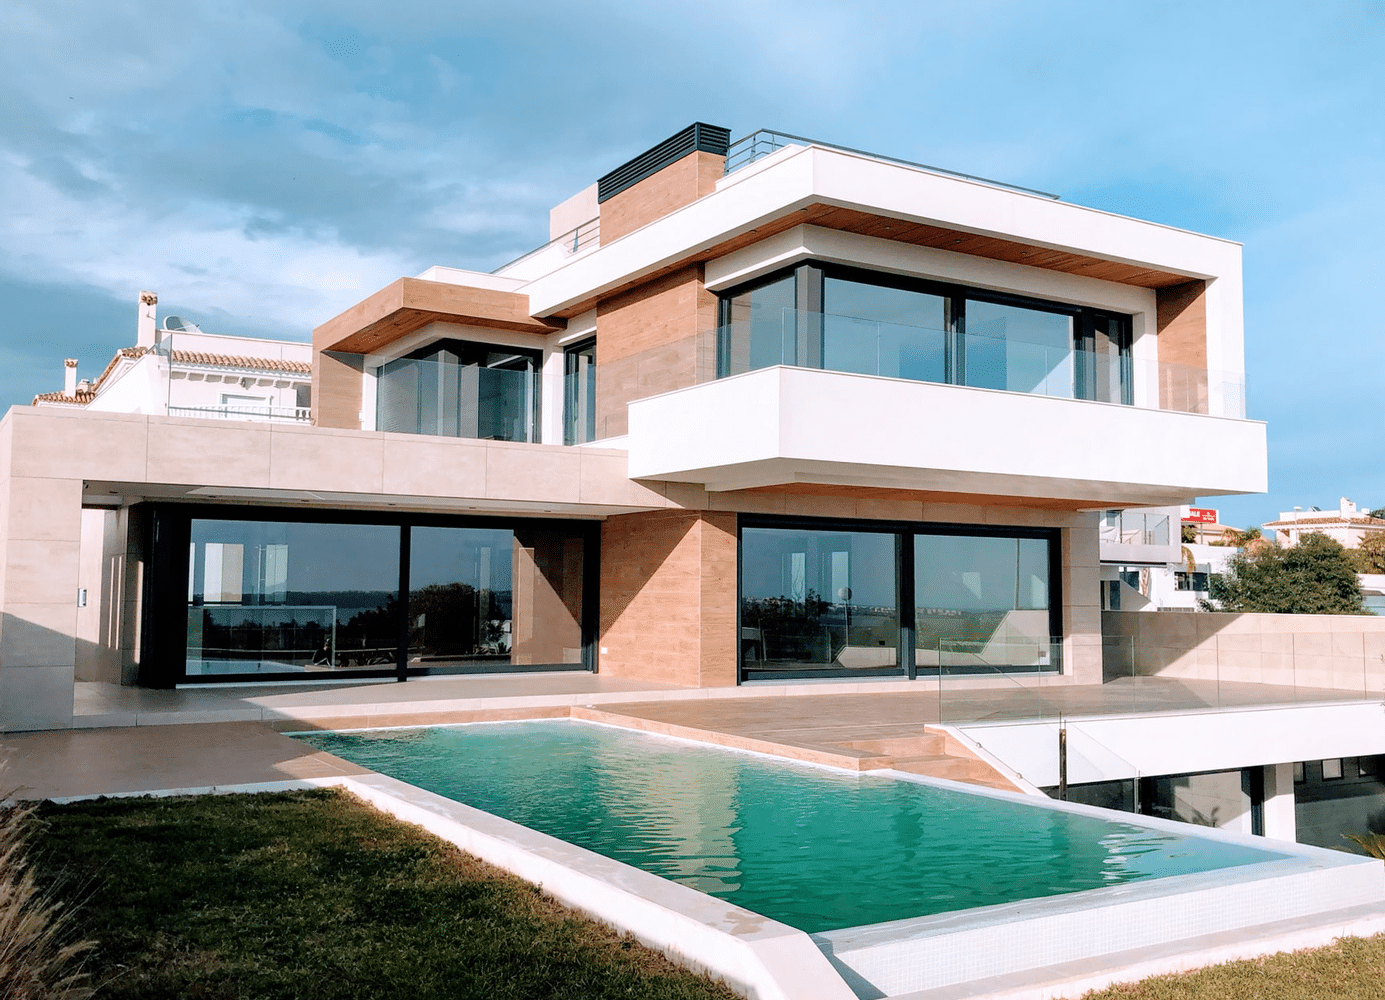 Modern exterior home with a pool